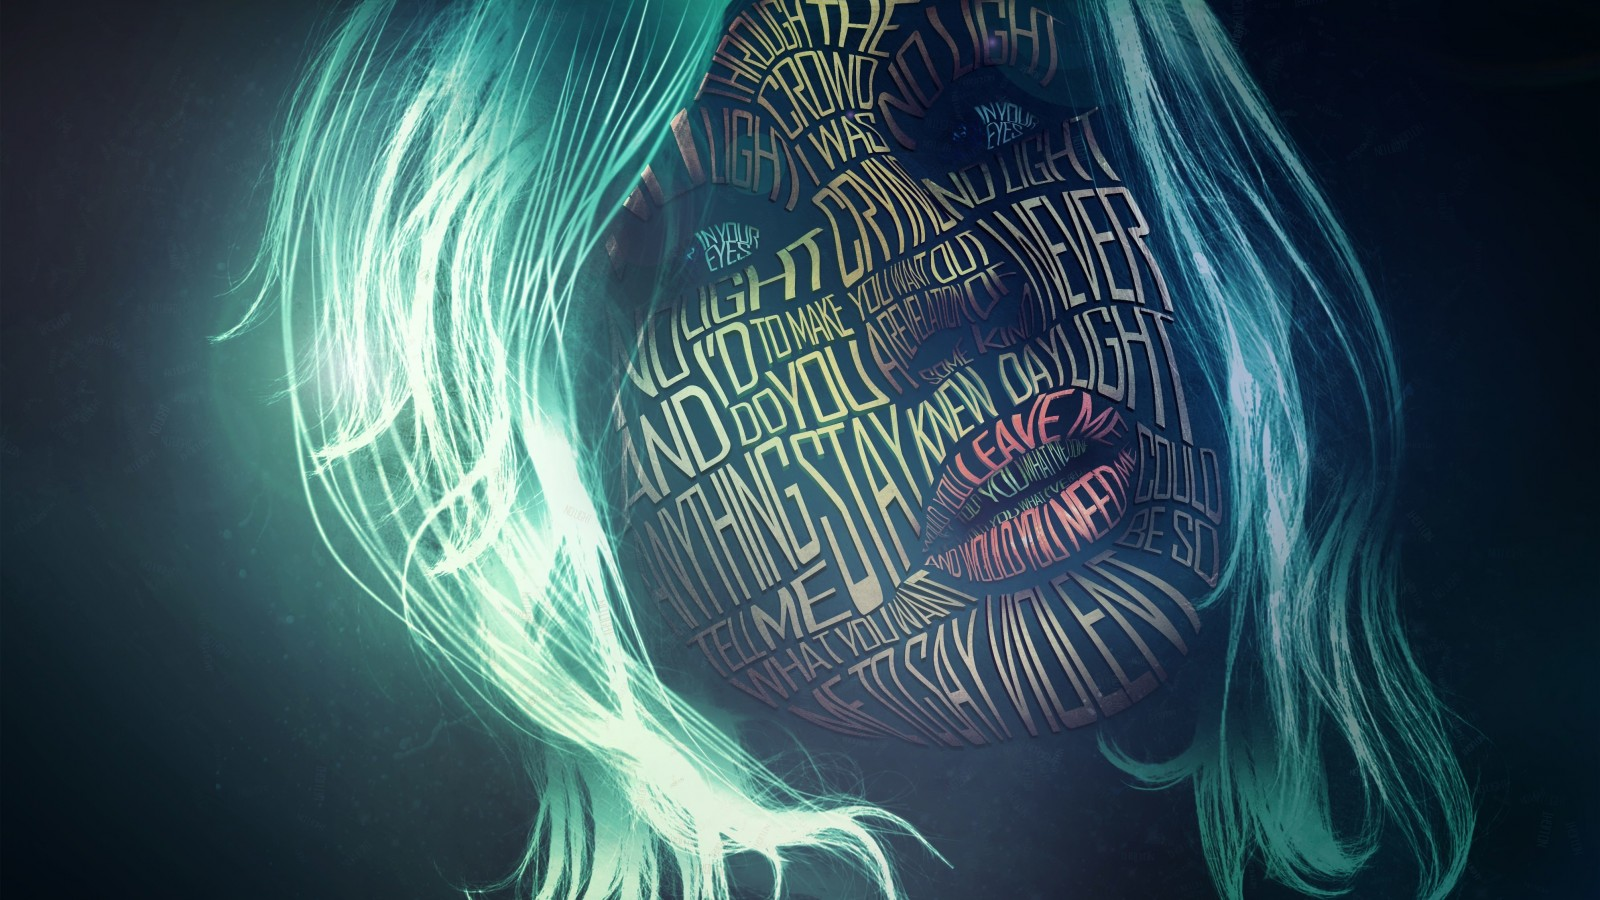 Woman Face Typography Wallpaper for Desktop 1600x900